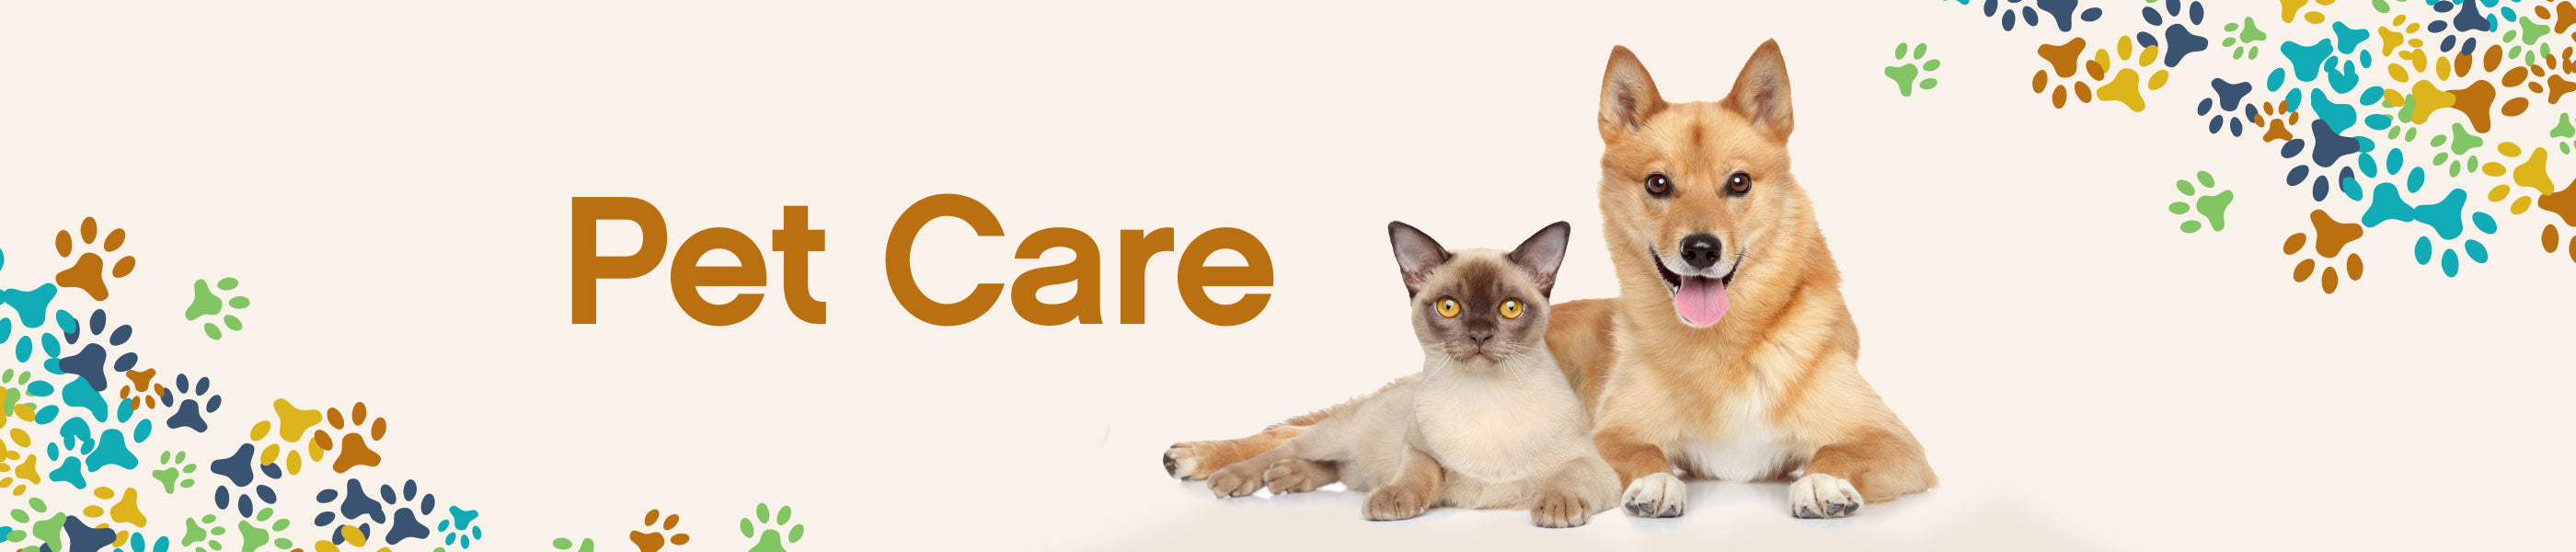 Pet Care header image